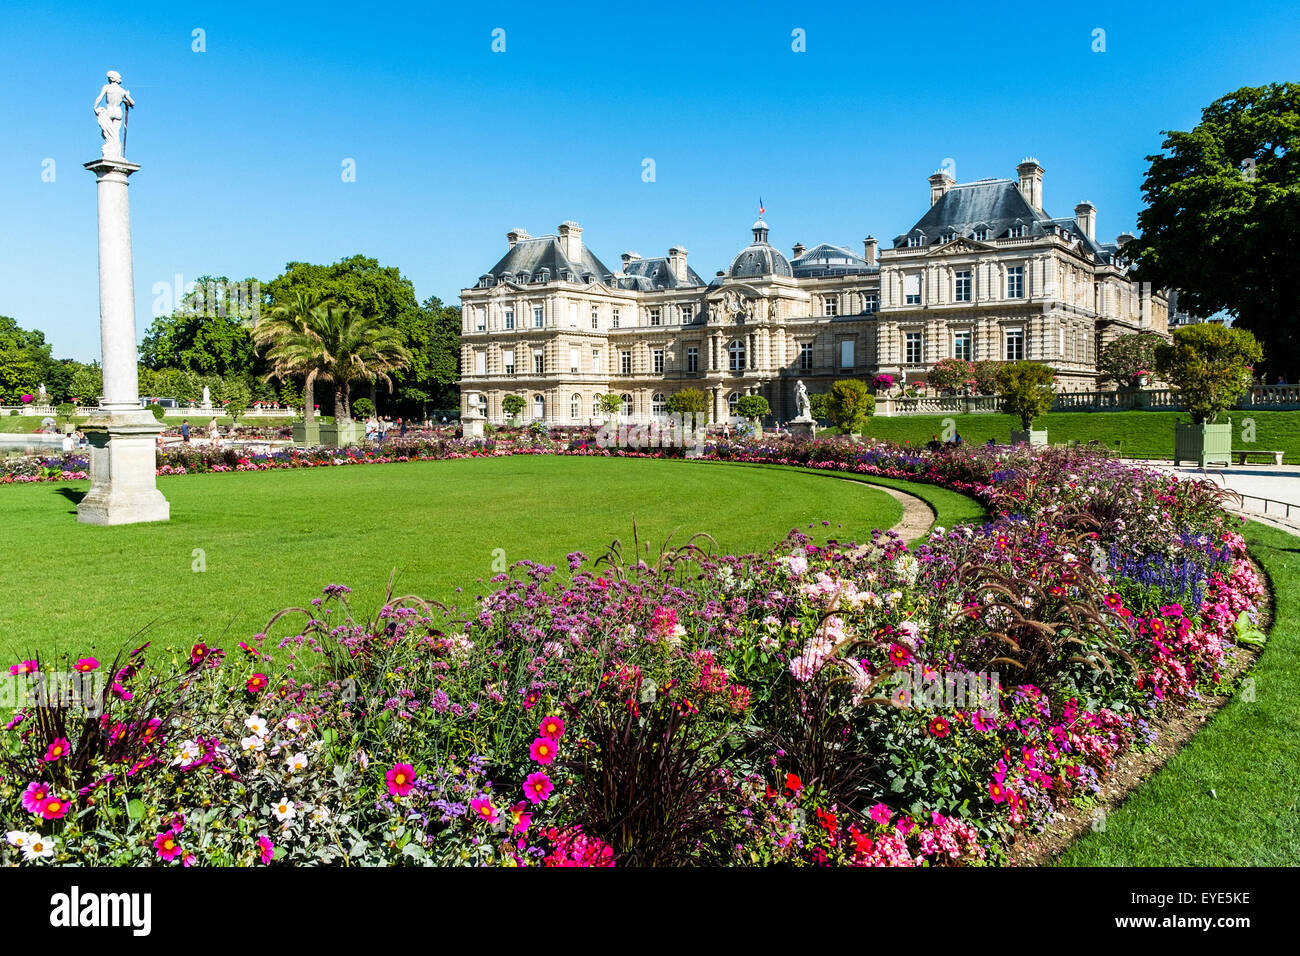 le jardin du luxembourg gardens paris france stock photo royalty free image 85748978 alamy. Black Bedroom Furniture Sets. Home Design Ideas